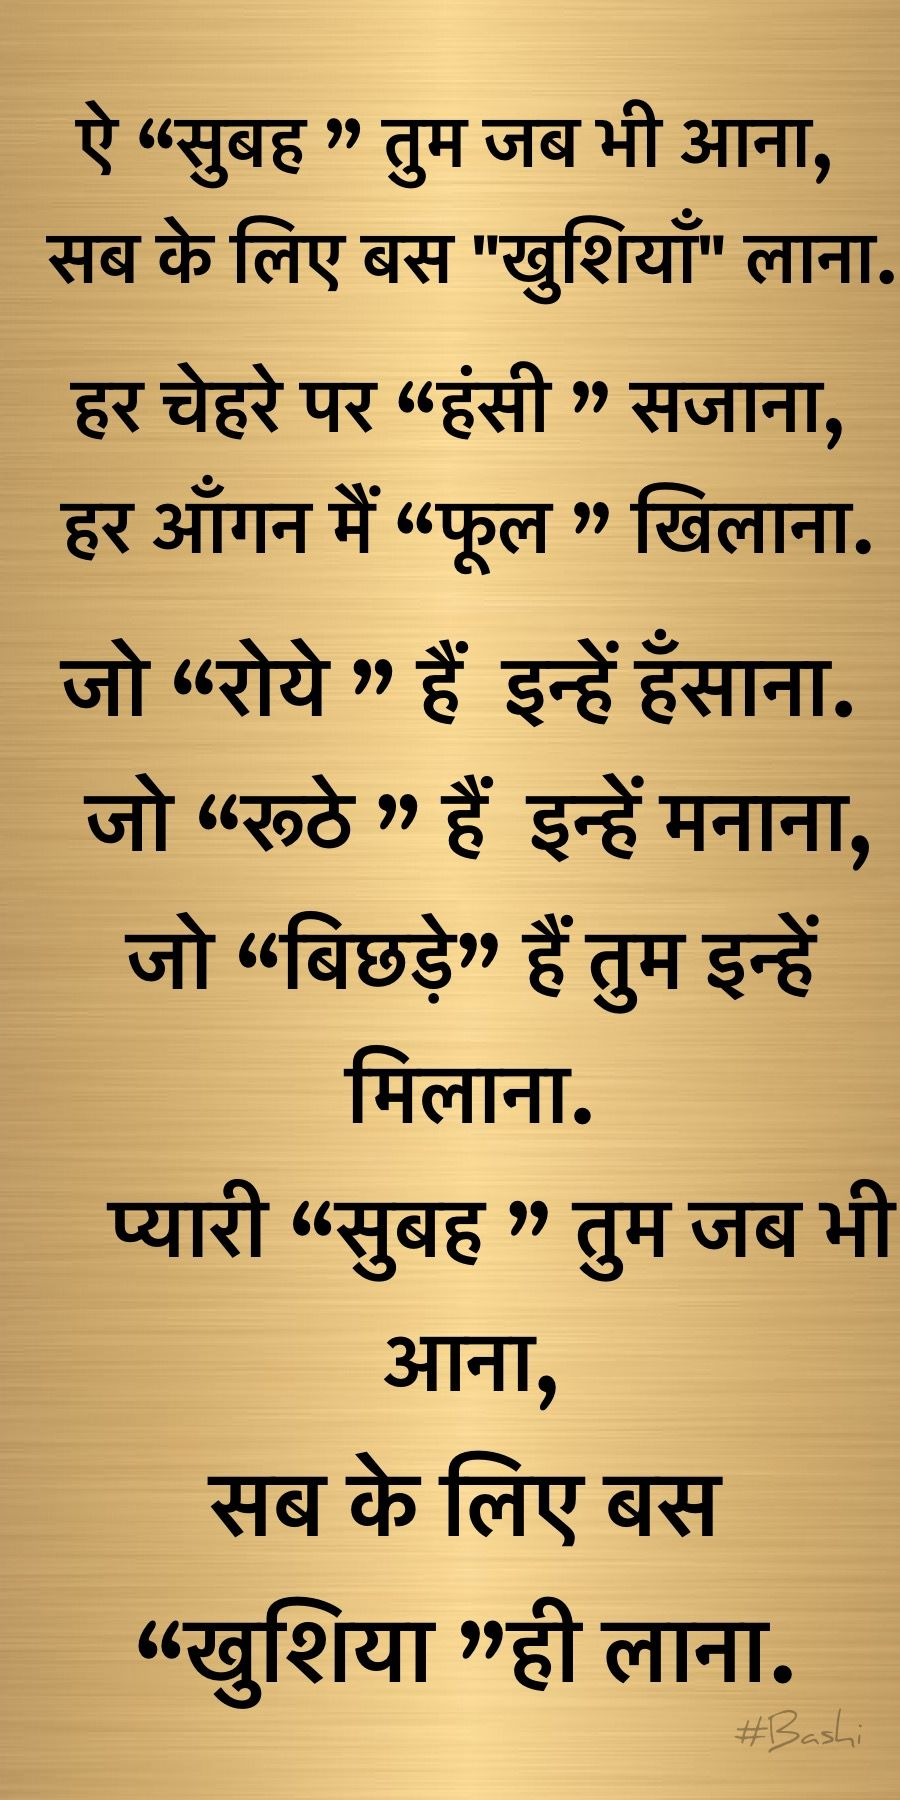 Shayari Shayari Hindi Quotes Morning Prayer Quotes Quotes